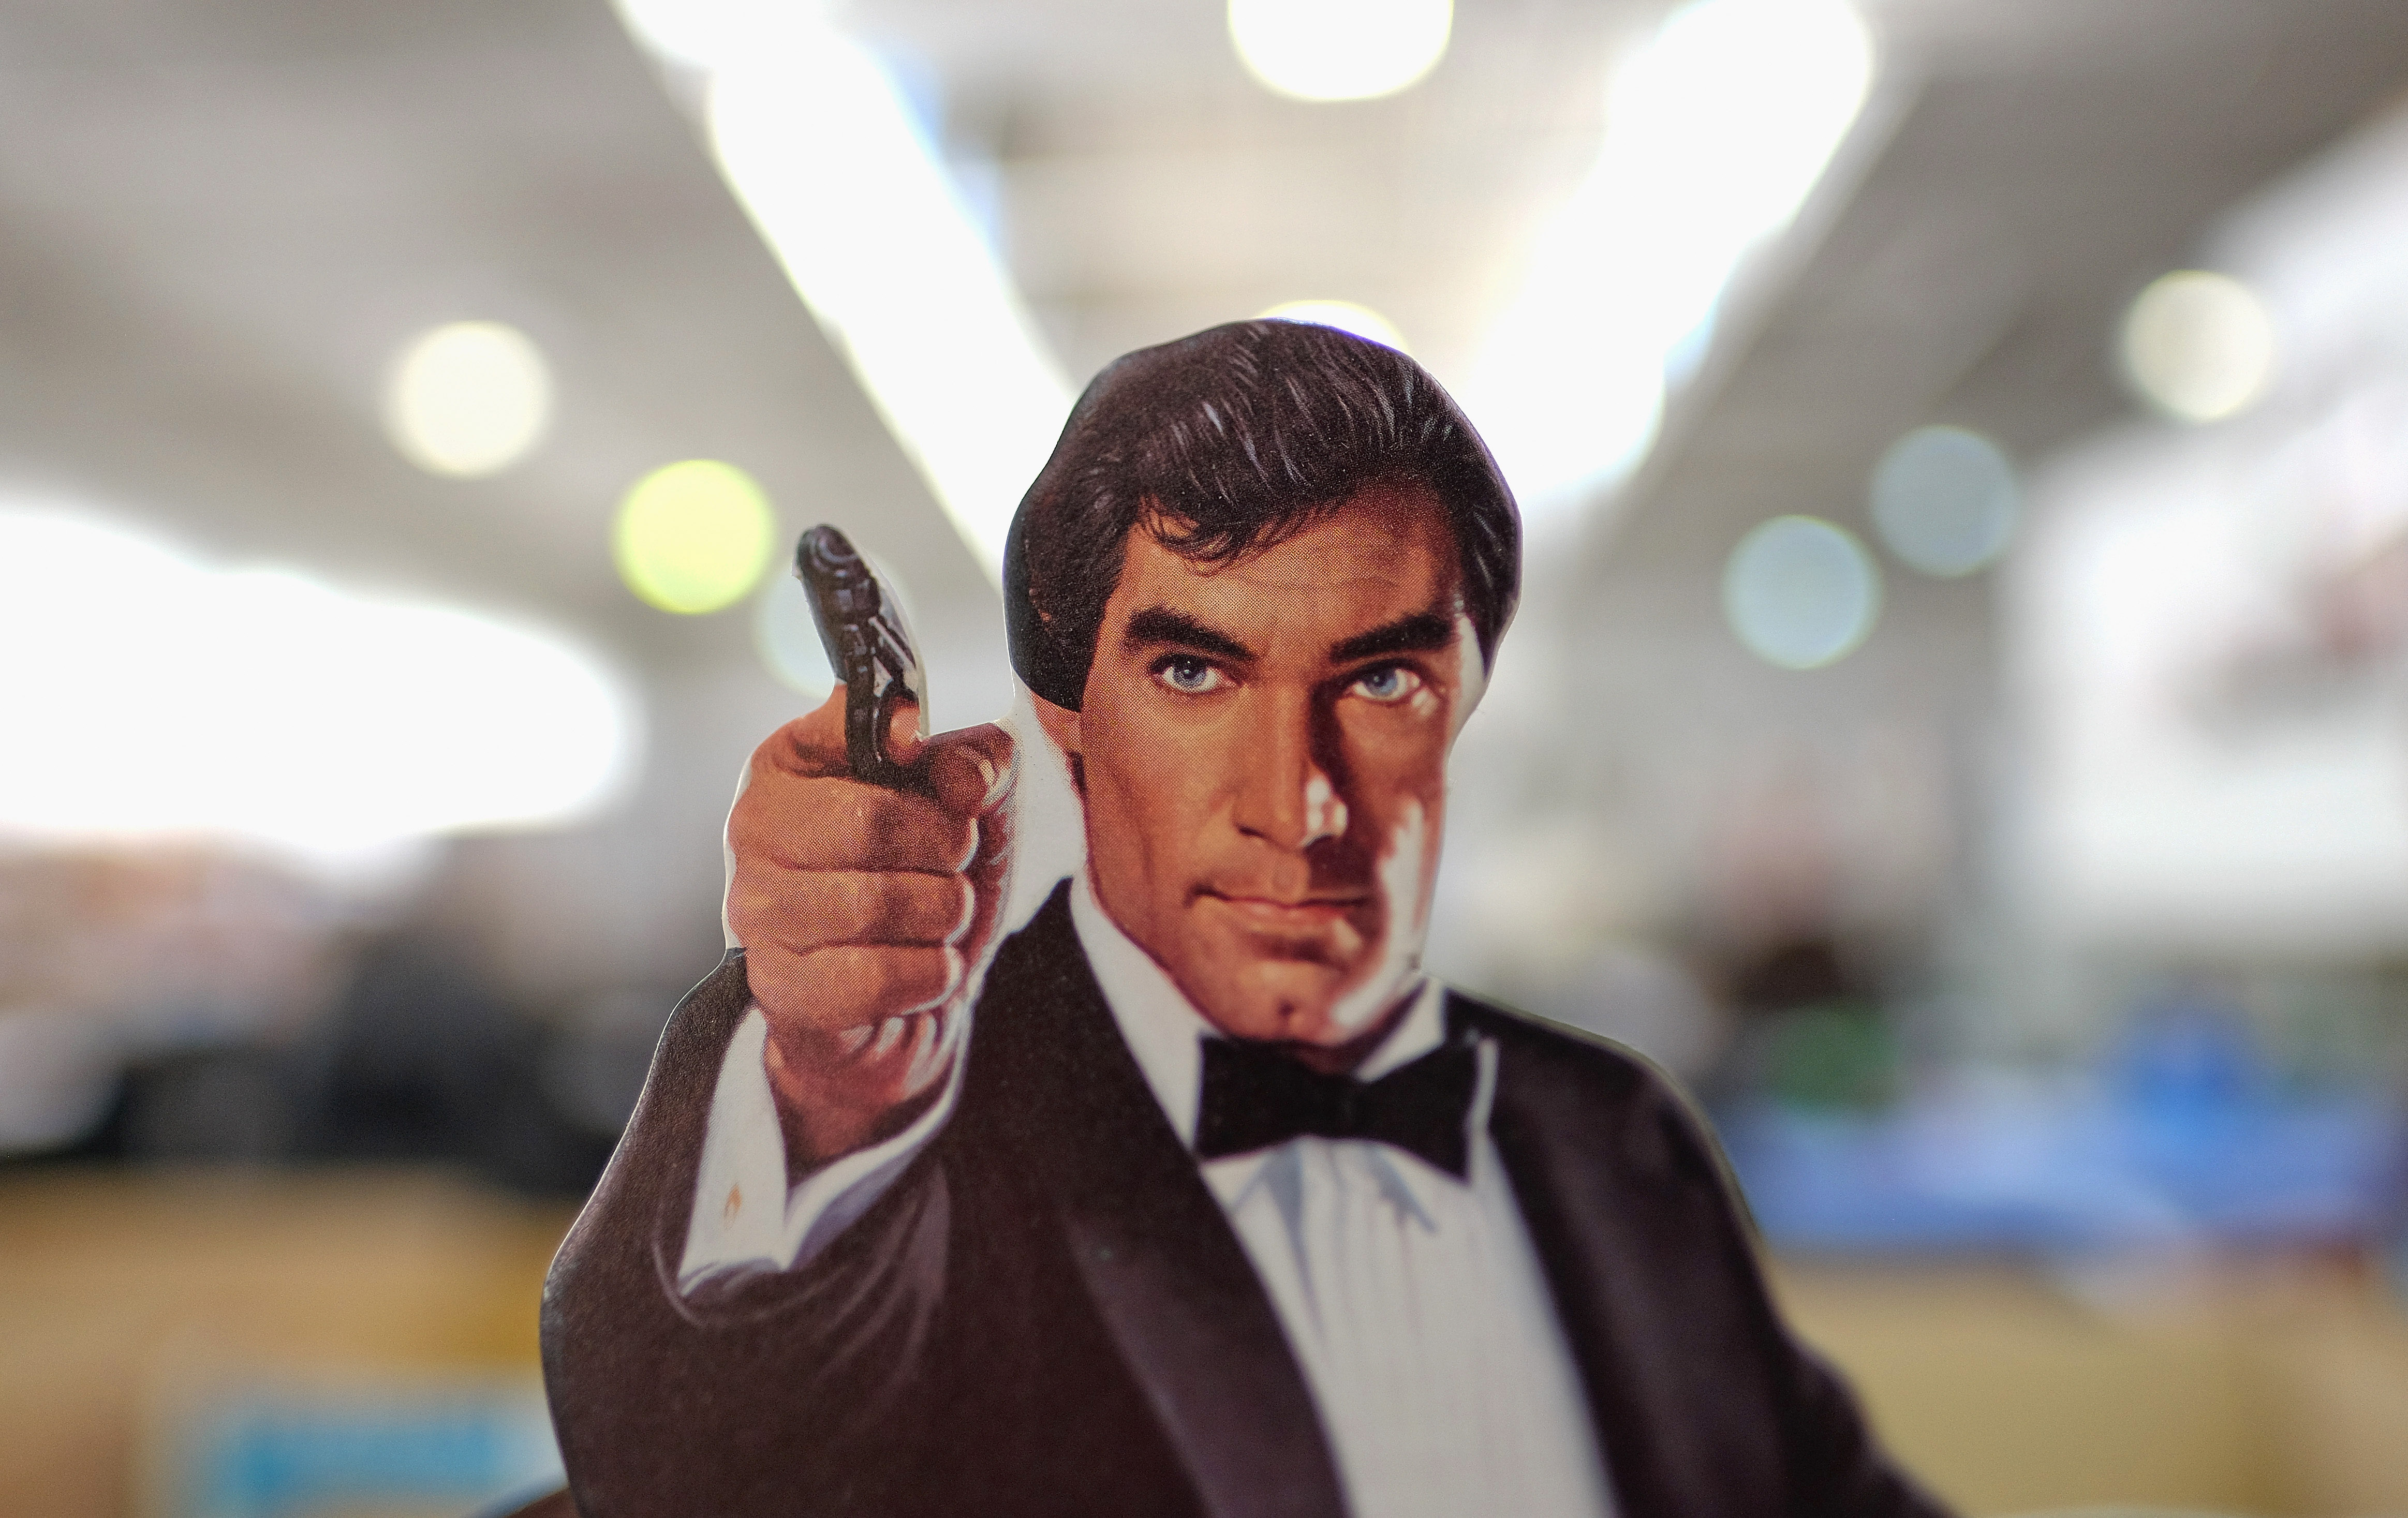 Over 700 James Bond Toys Spanning All The Films Are Up For Auction